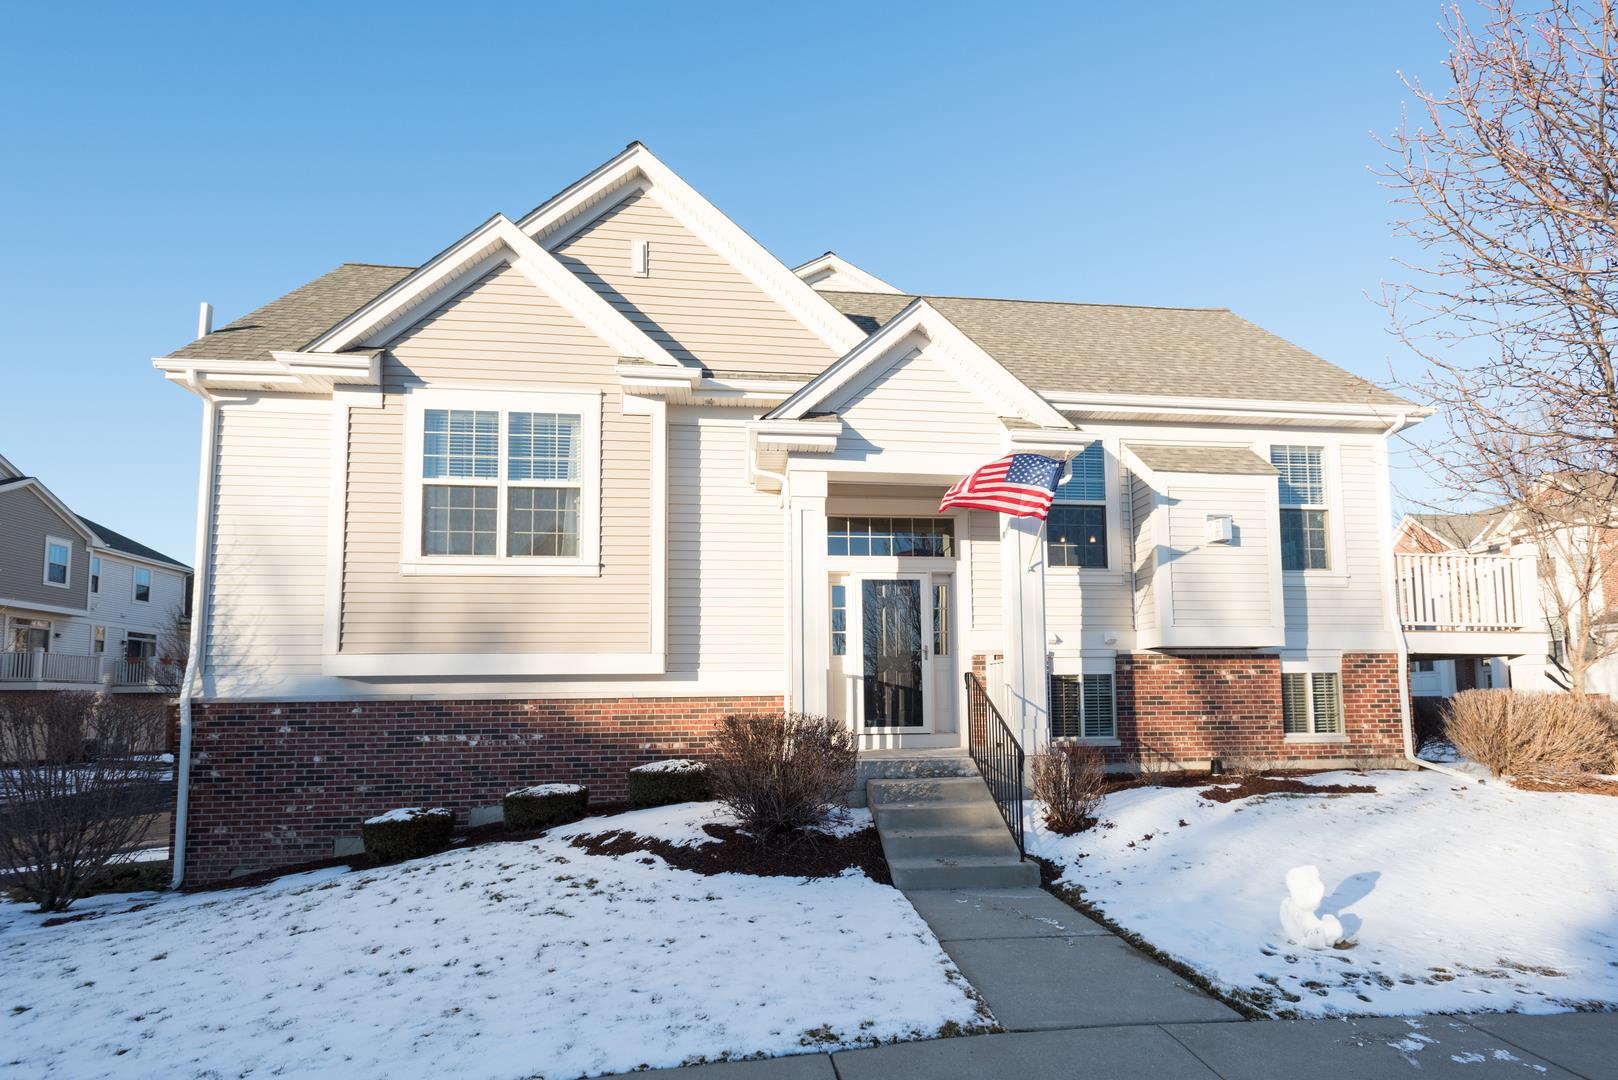 0N074 Forsythe Court, Winfield, IL 60190 - #: 10975905